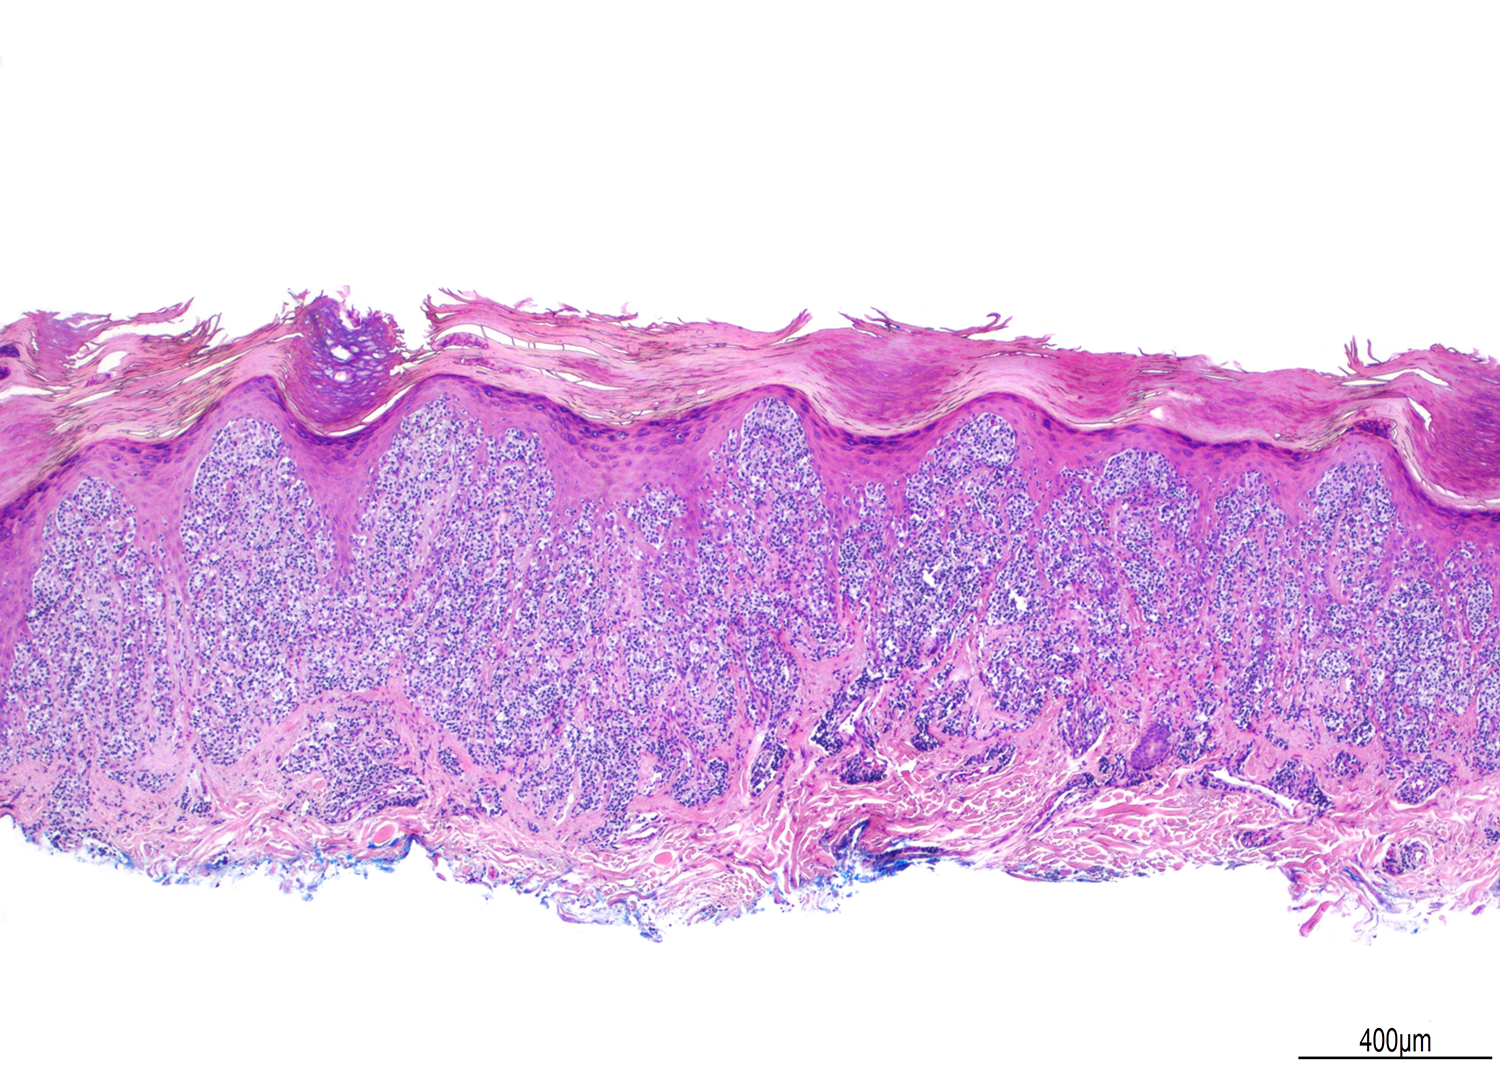 Pagetoid reticulosis